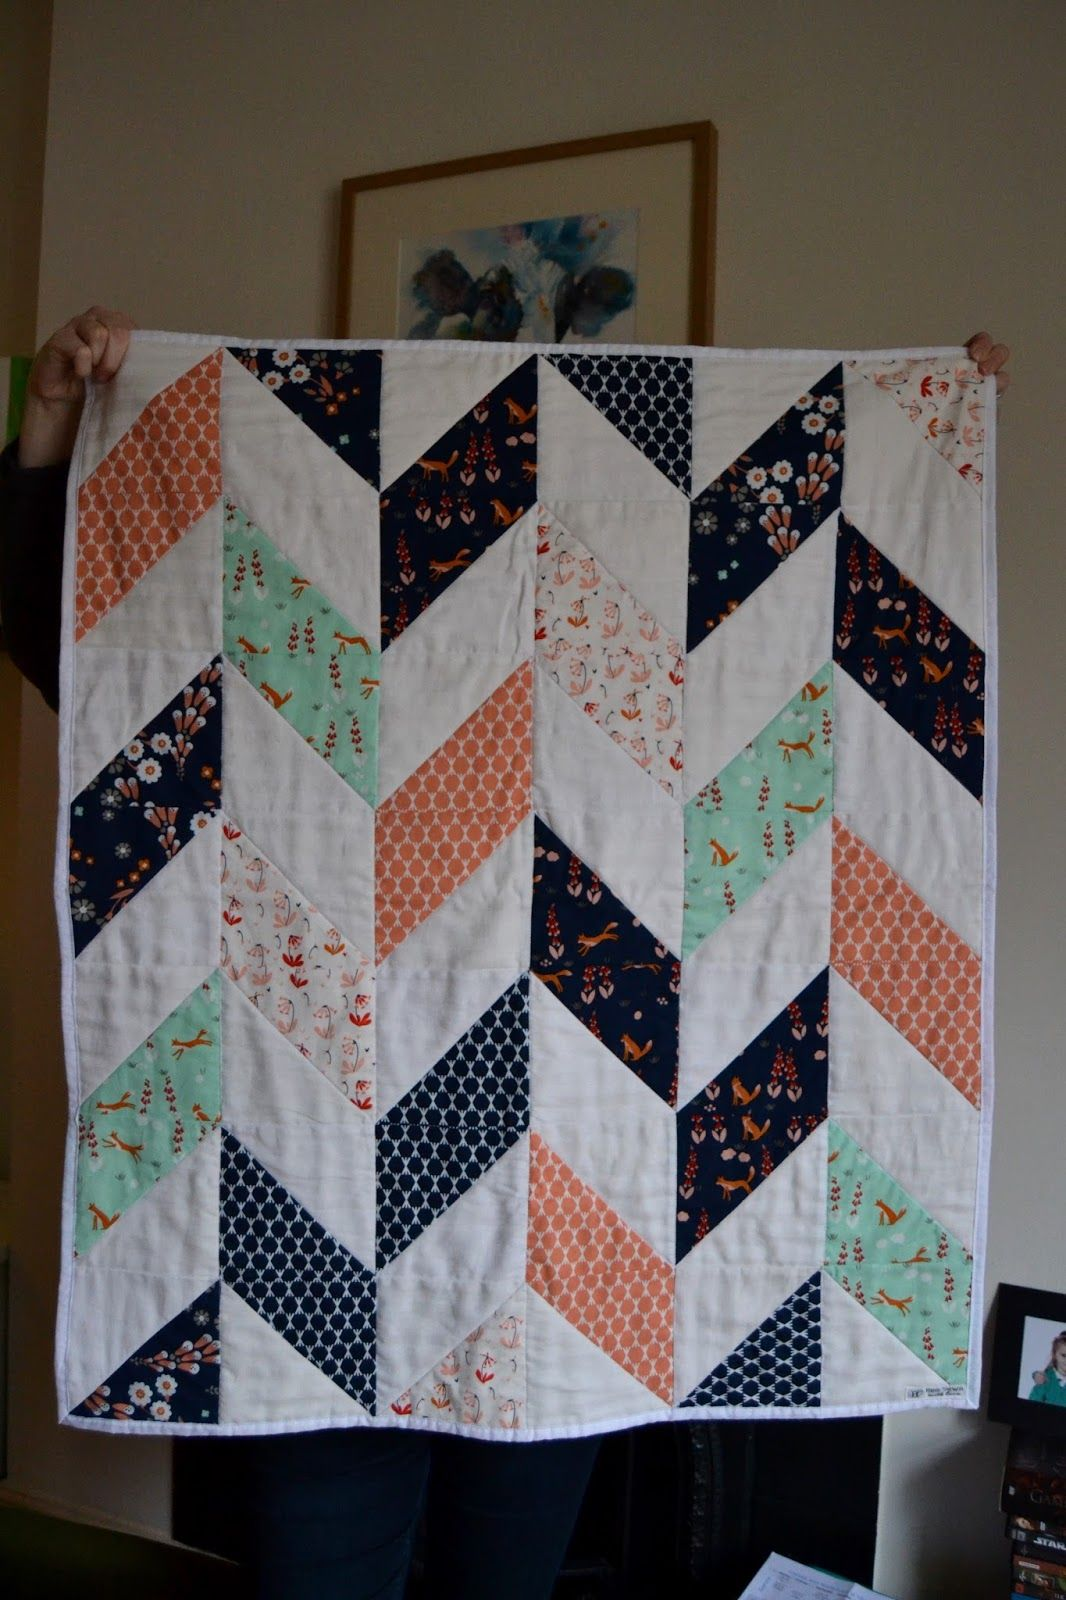 Some of our dearest friends were expecting their baby girl in early January, and I knew I wanted to make them a lovely quilt as a gift. I r...